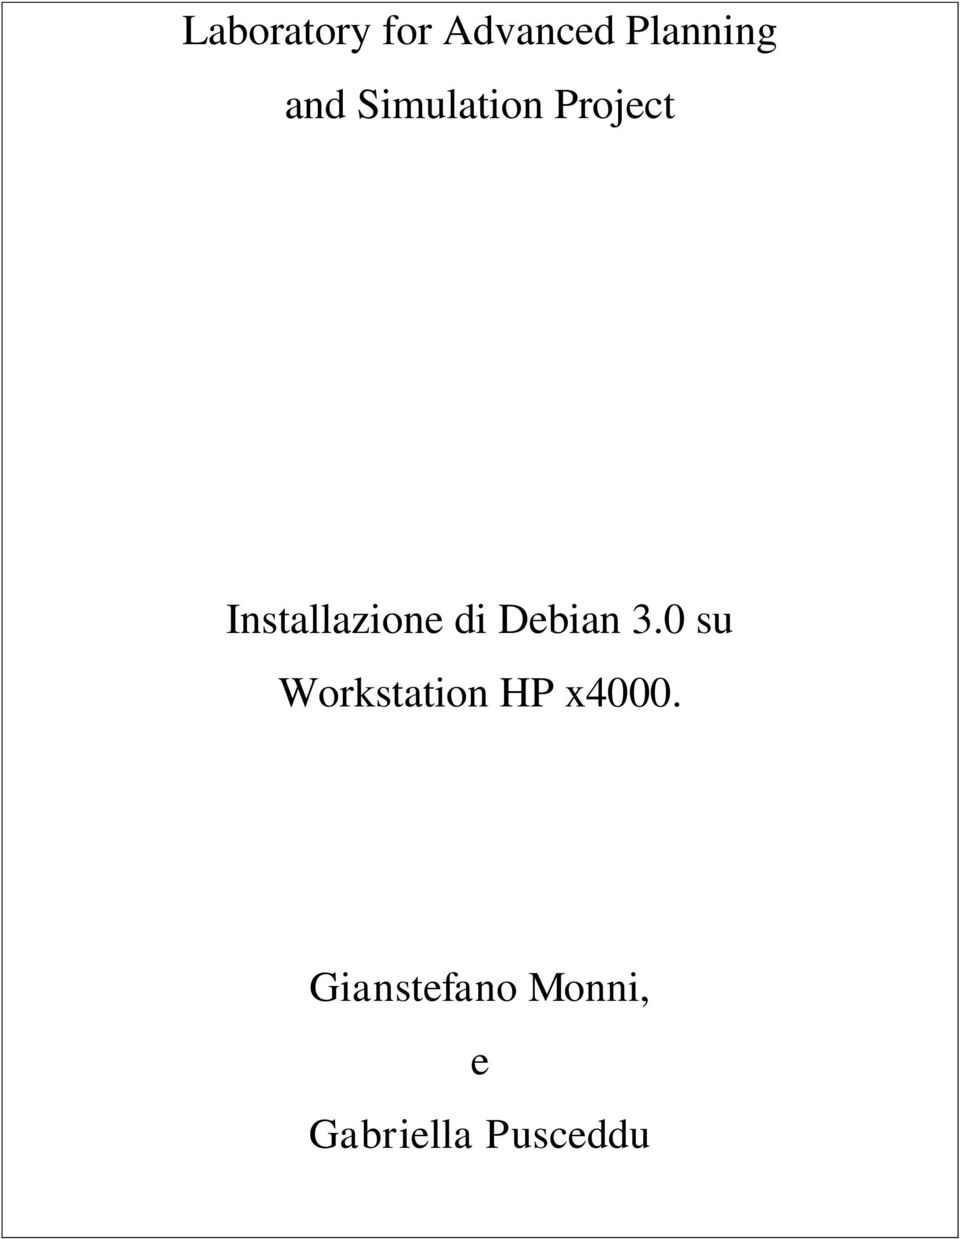 Debian 3.0 su Workstation HP x4000.